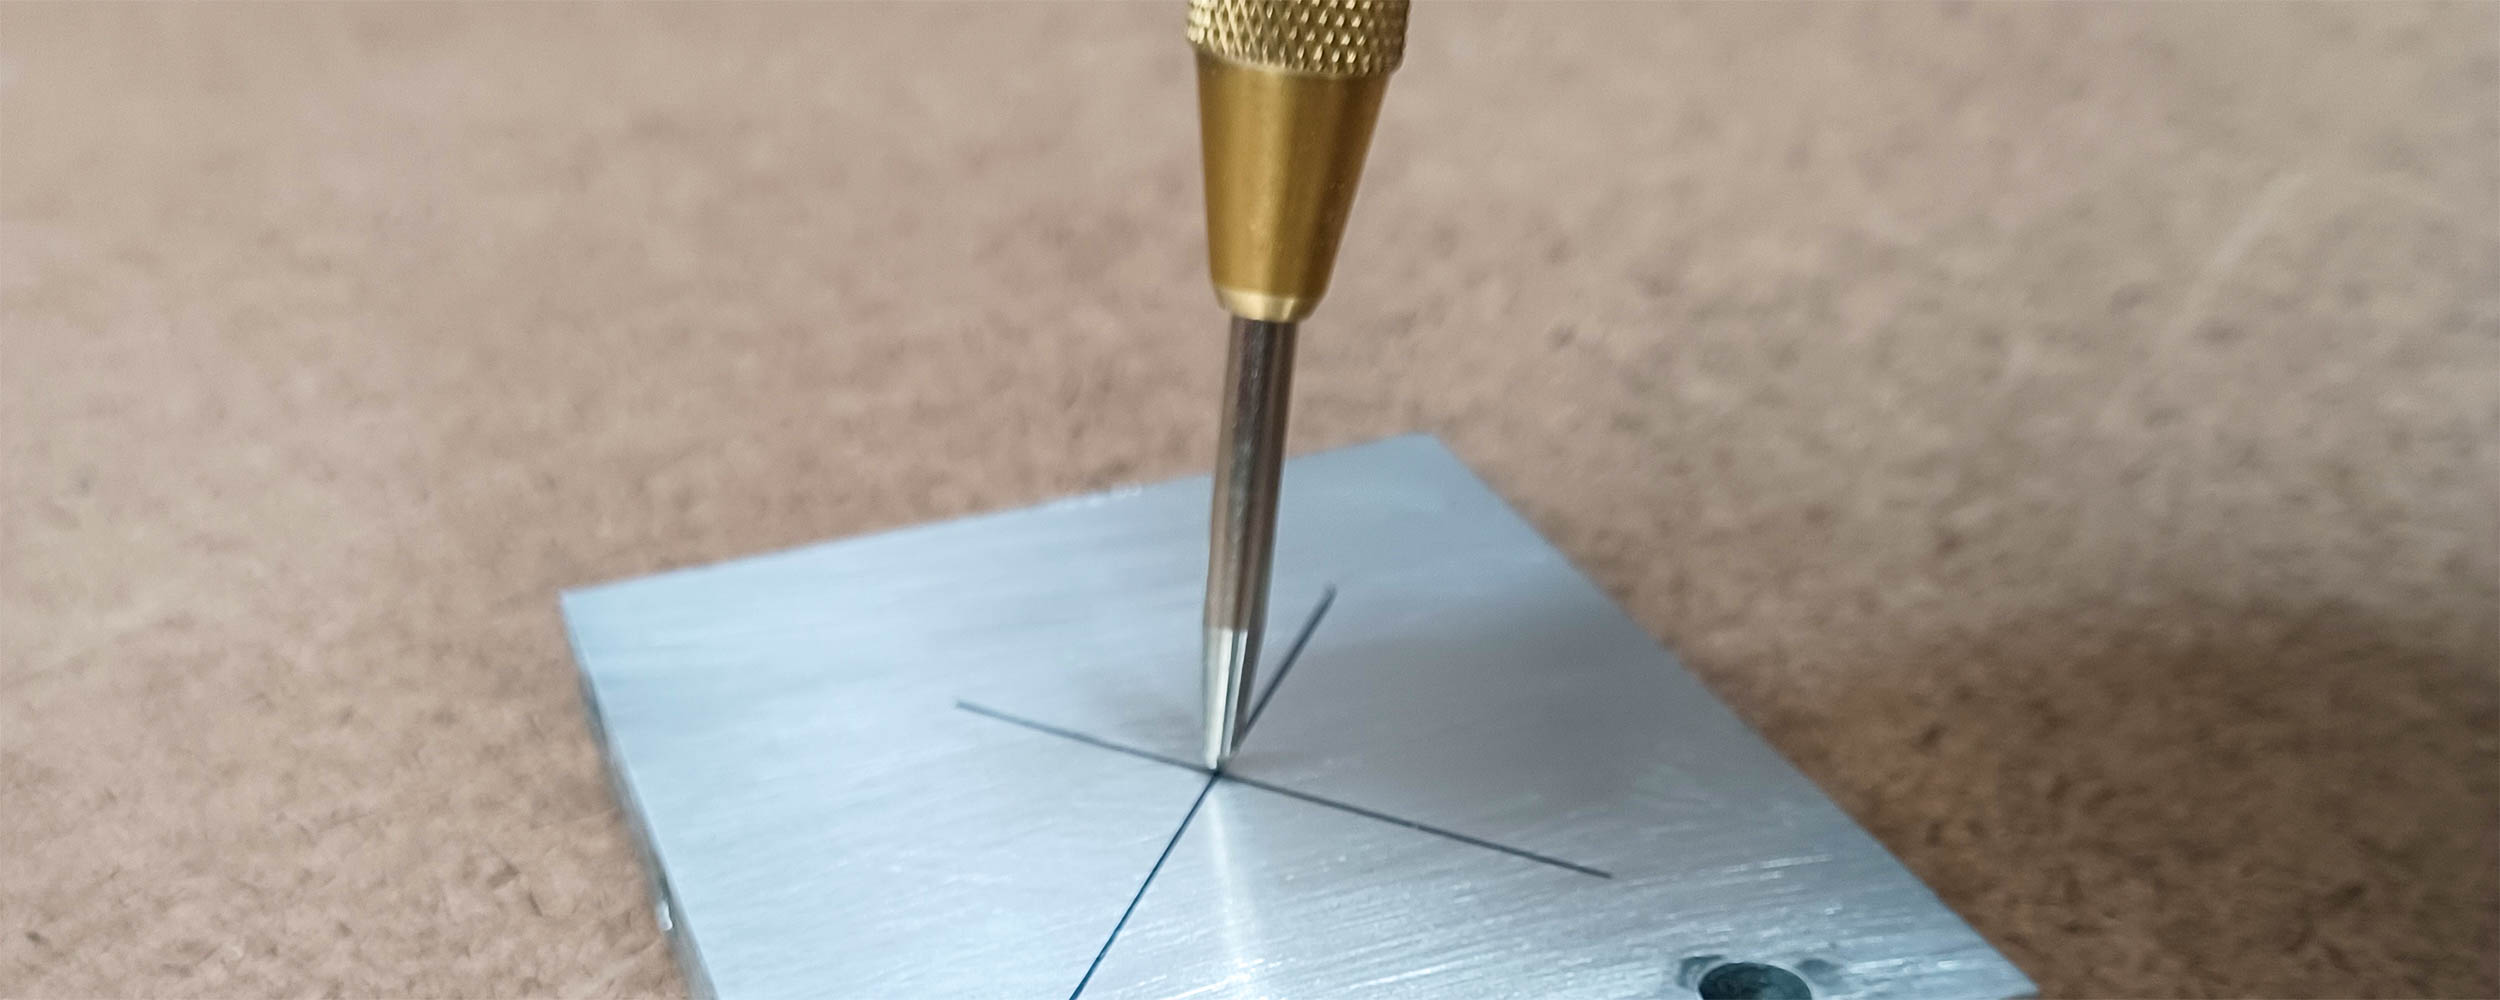 A center punch is perfect for marking metal